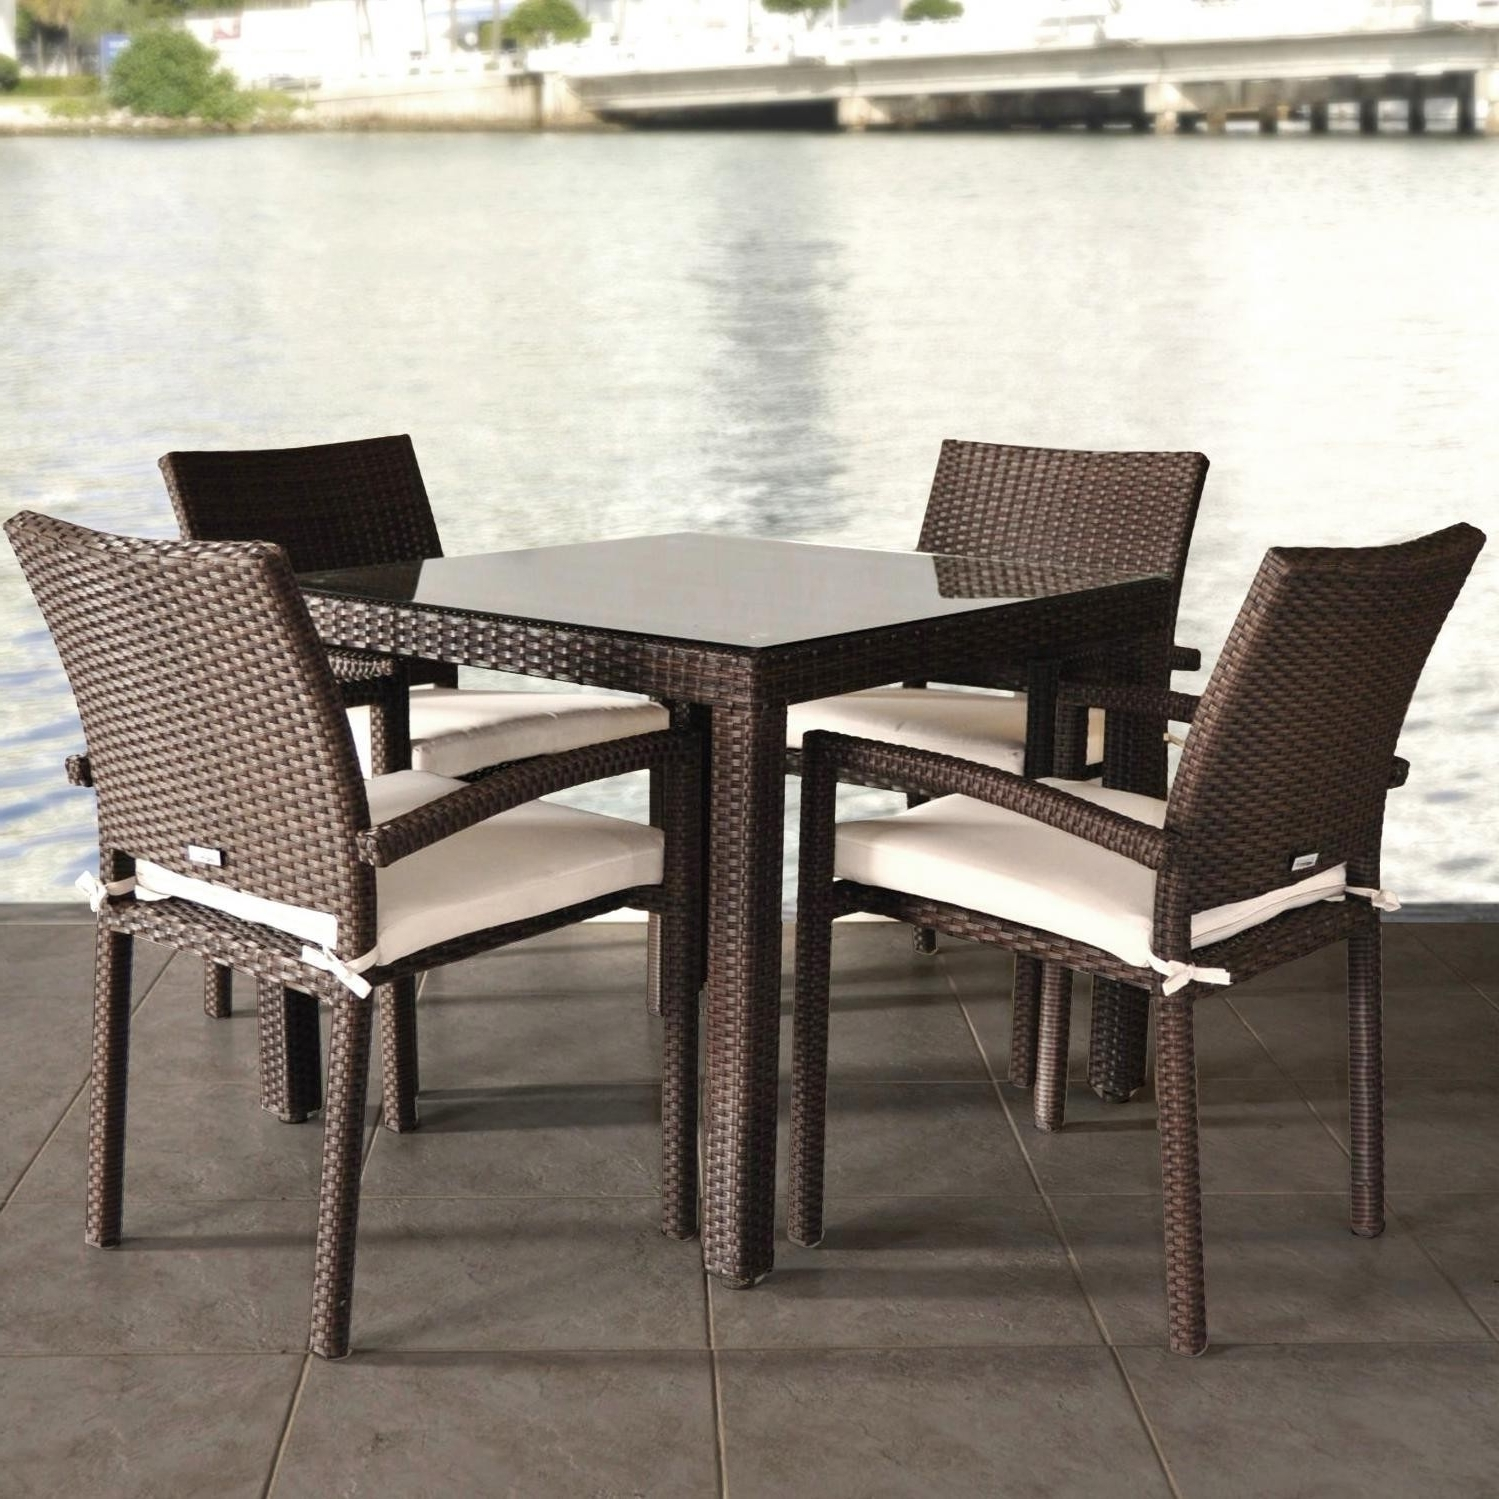 Wicker And Glass Dining Tables Pertaining To Widely Used Round Glass Dining Table Sets For 4 Best Of Atlantic Liberty  (View 3 of 25)